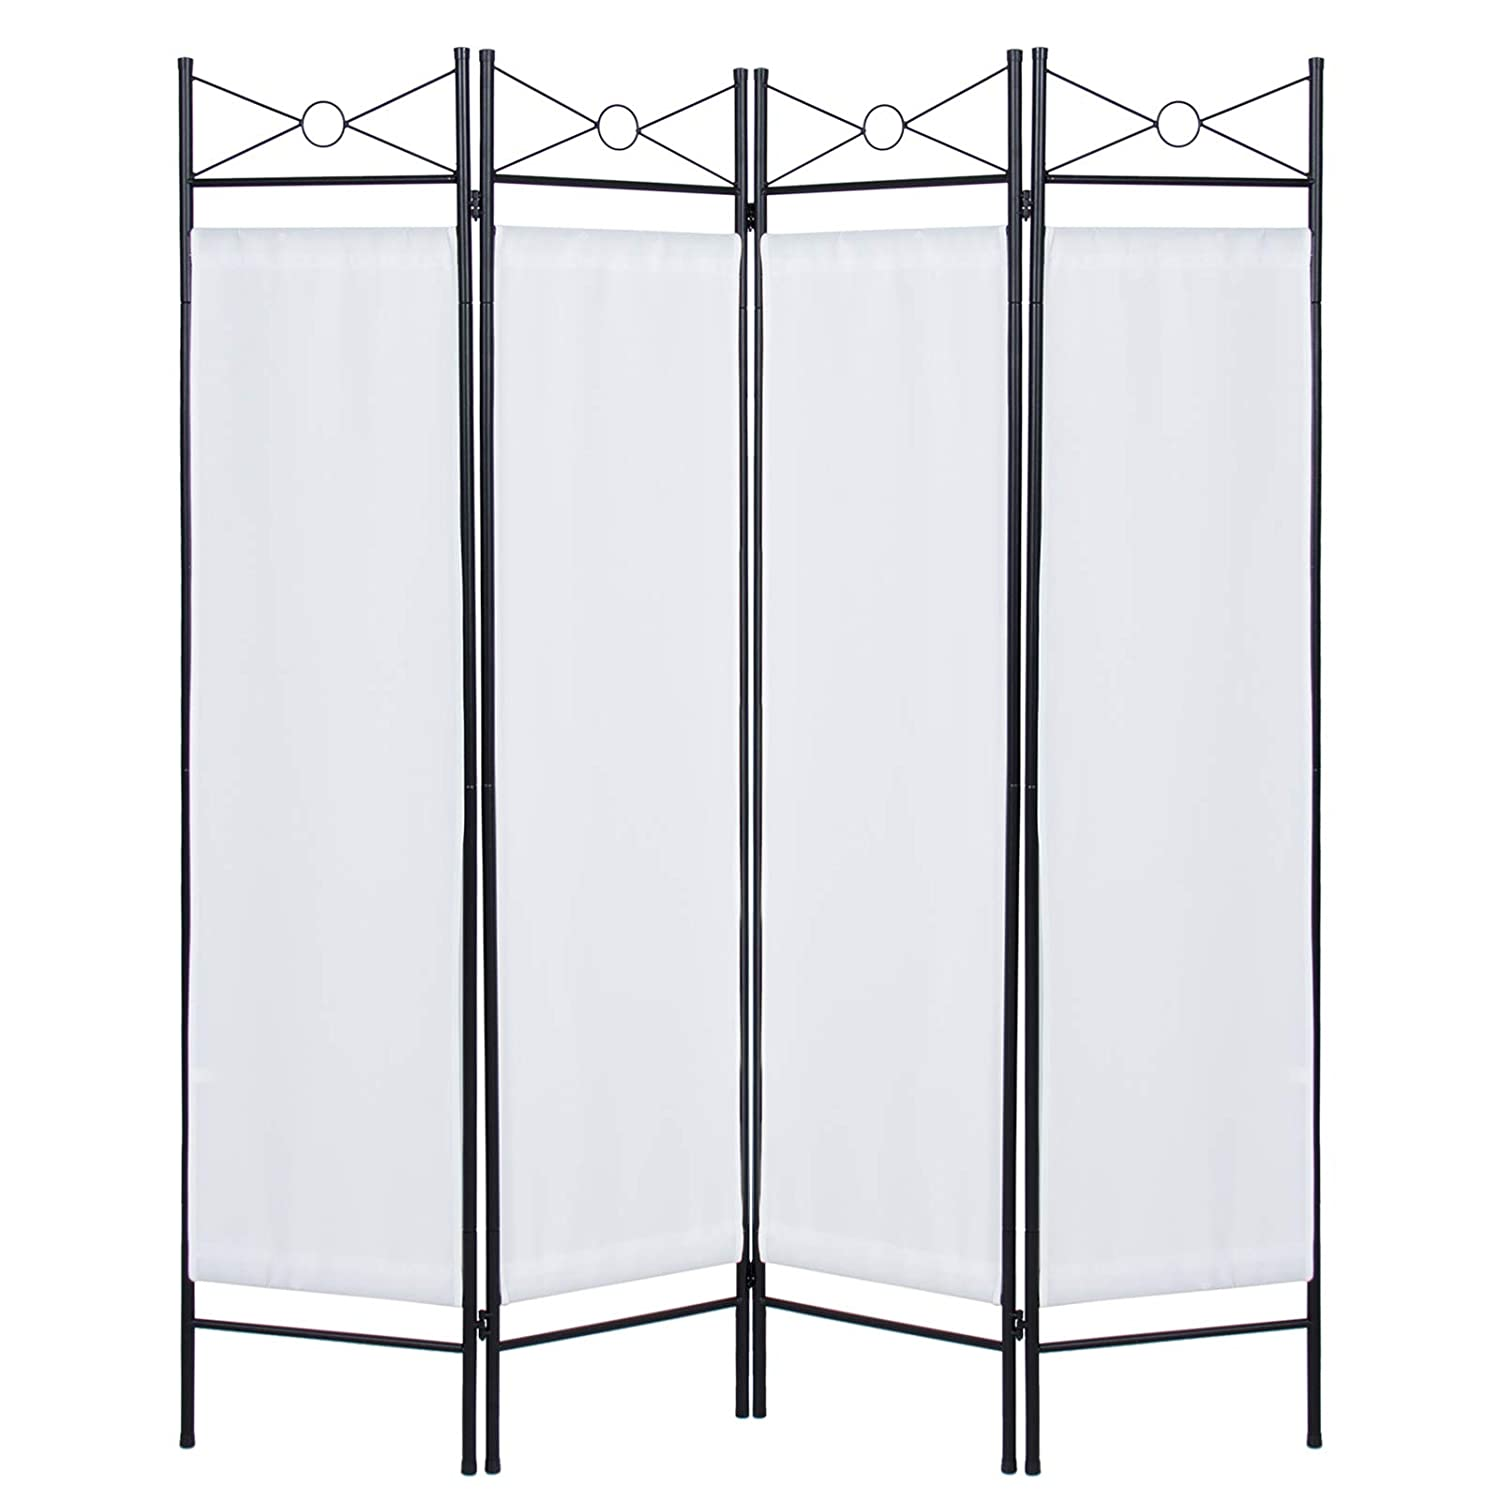 Best Choice Products 6ft 4-Panel Folding Privacy Screen Room Divider Decoration Accent for Bedroom, Living Room, Office w/Steel Frame - White